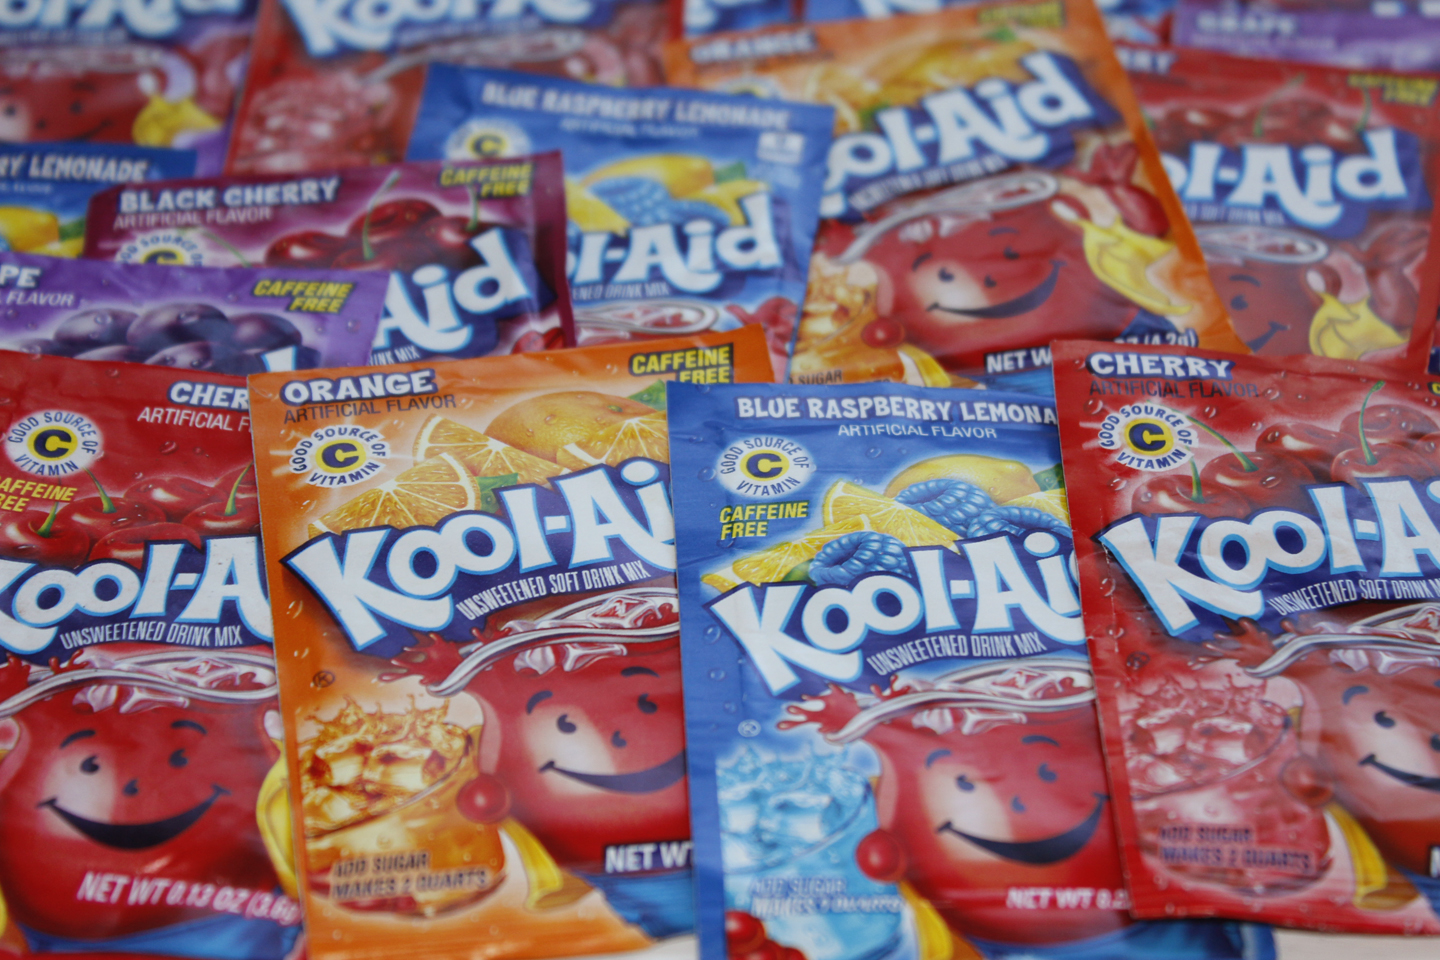 aid drank essay kool never Welcome to the snodland historical society website the society was formed in 1997 and since 2000 its collections have been held at snodland millennium museum.